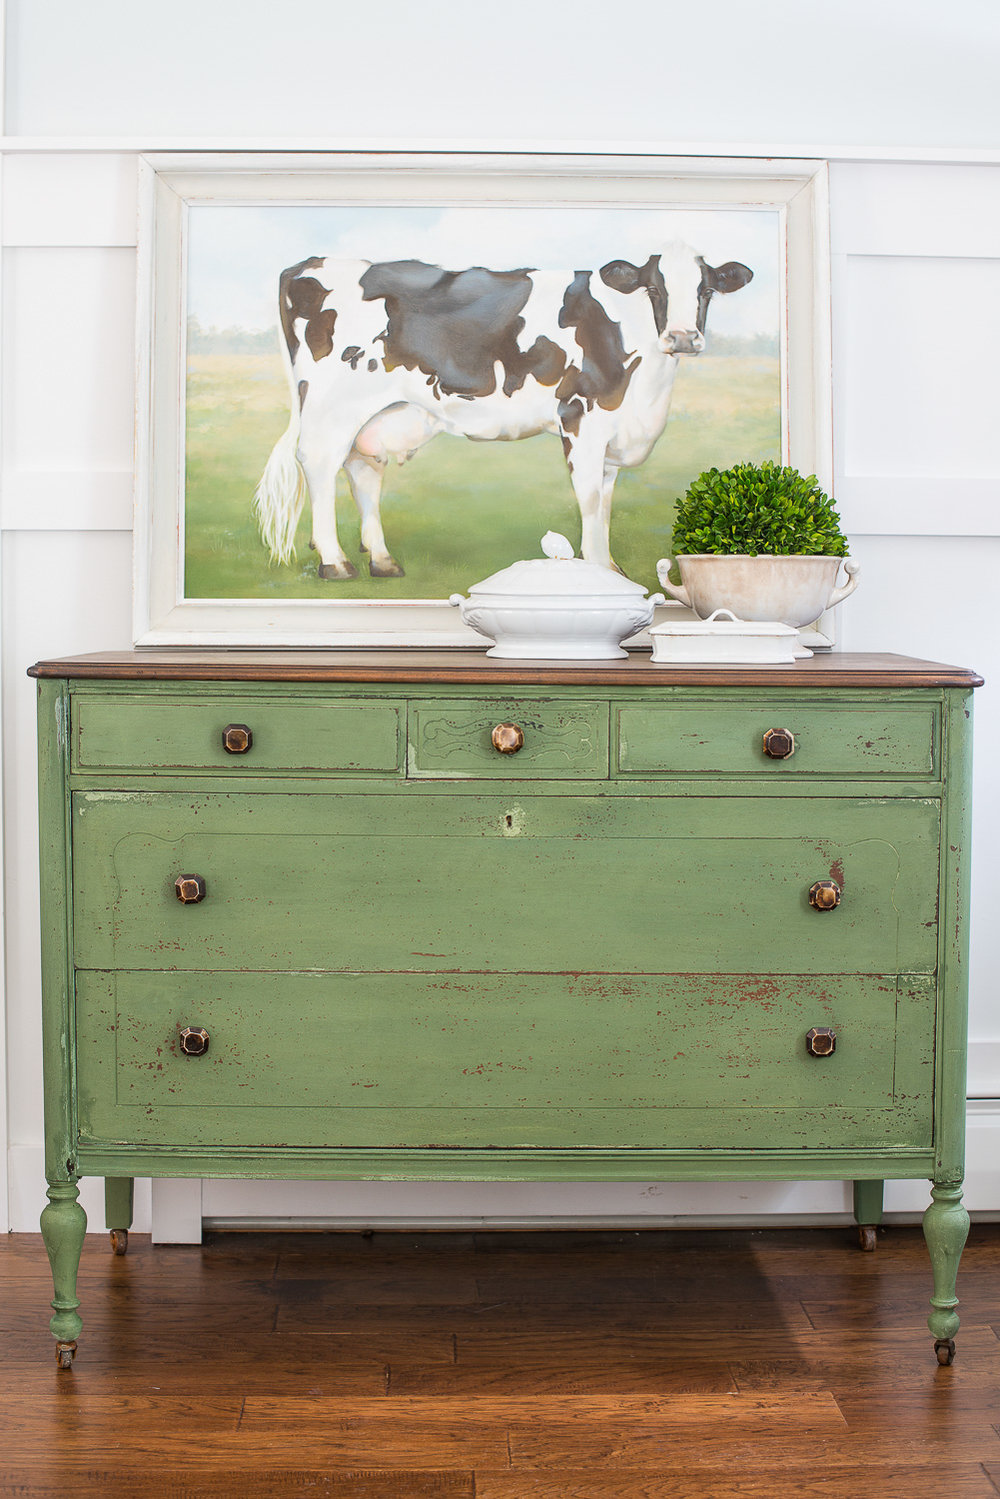 Dresser Painted in Miss Mustard Seed's Milk Paint in the Colour Boxwood